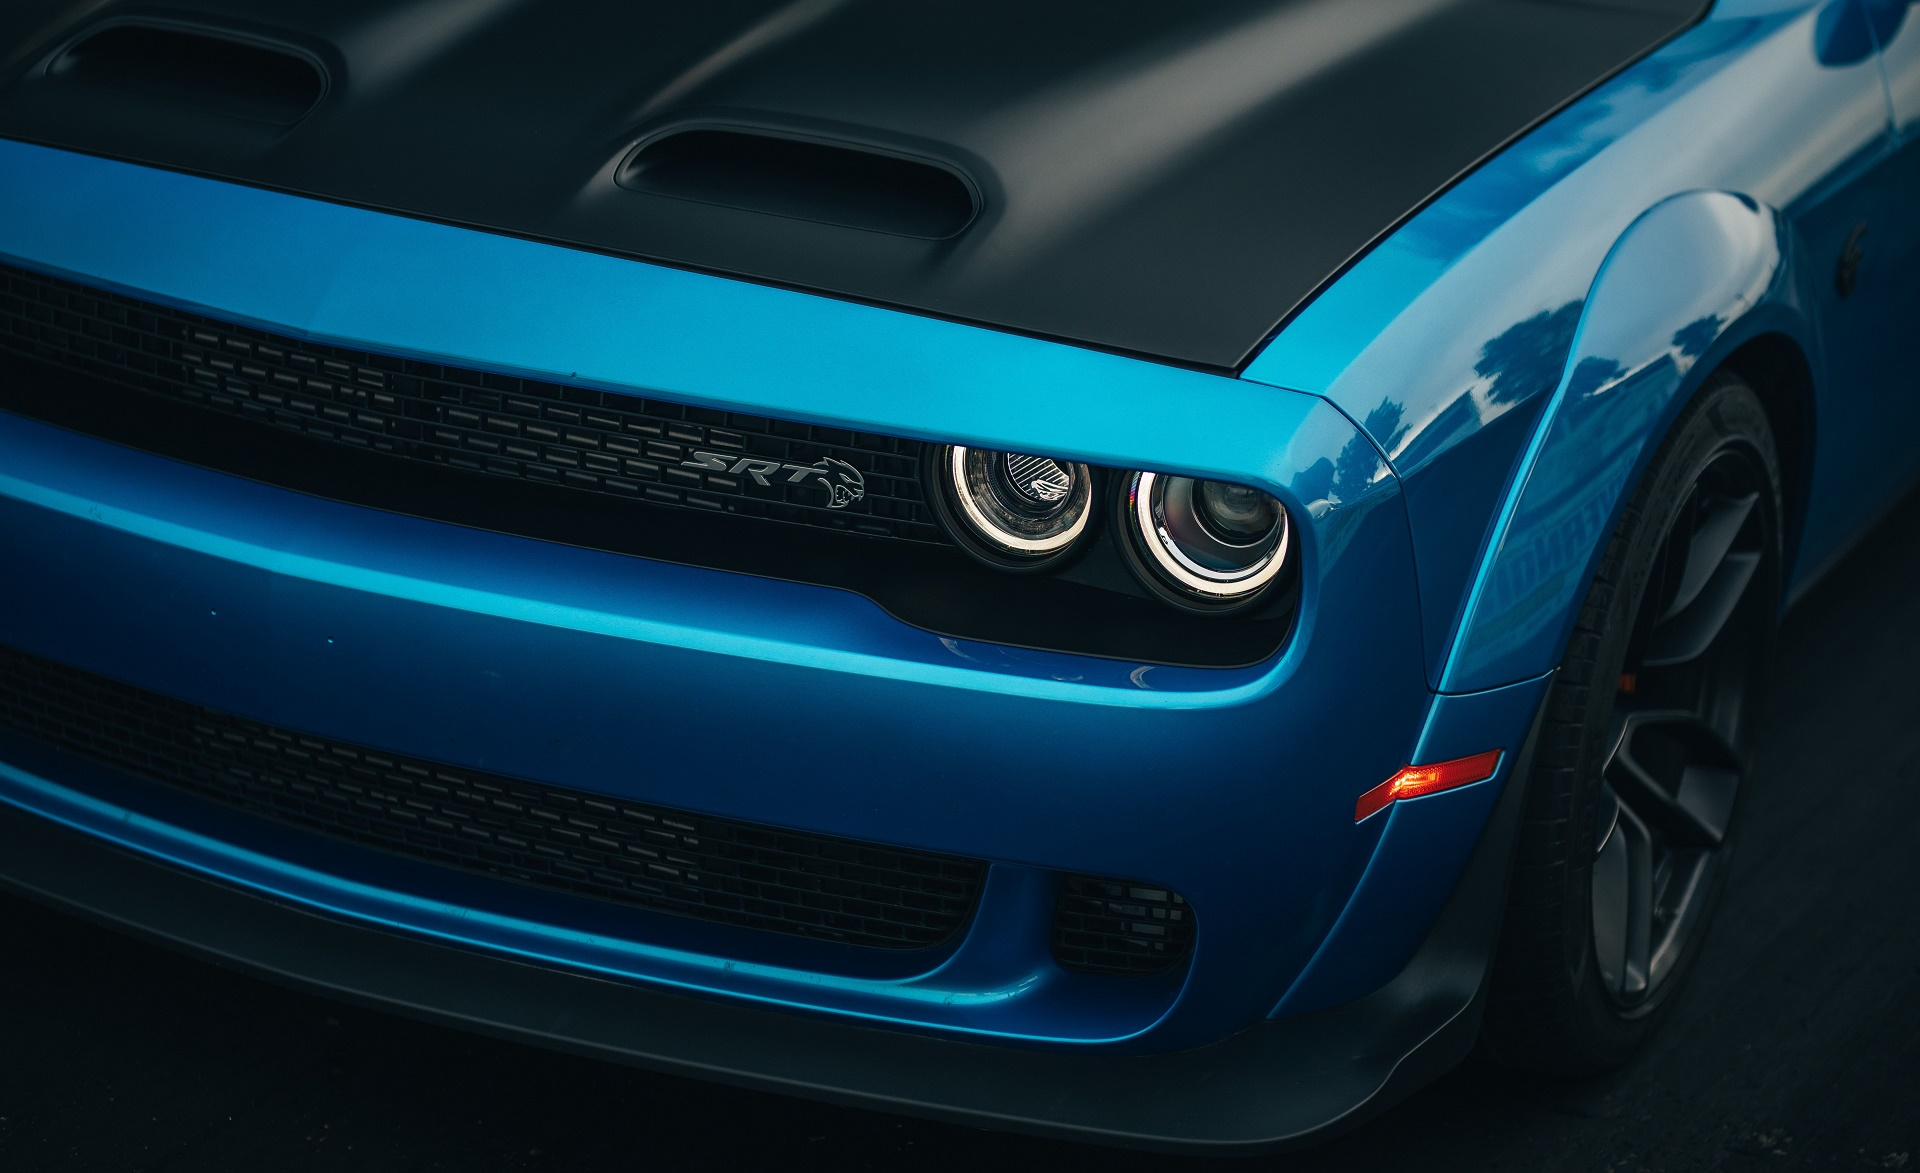 2019 Dodge Challenger SRT Hellcat Redeye Headlight Wallpaper (15)